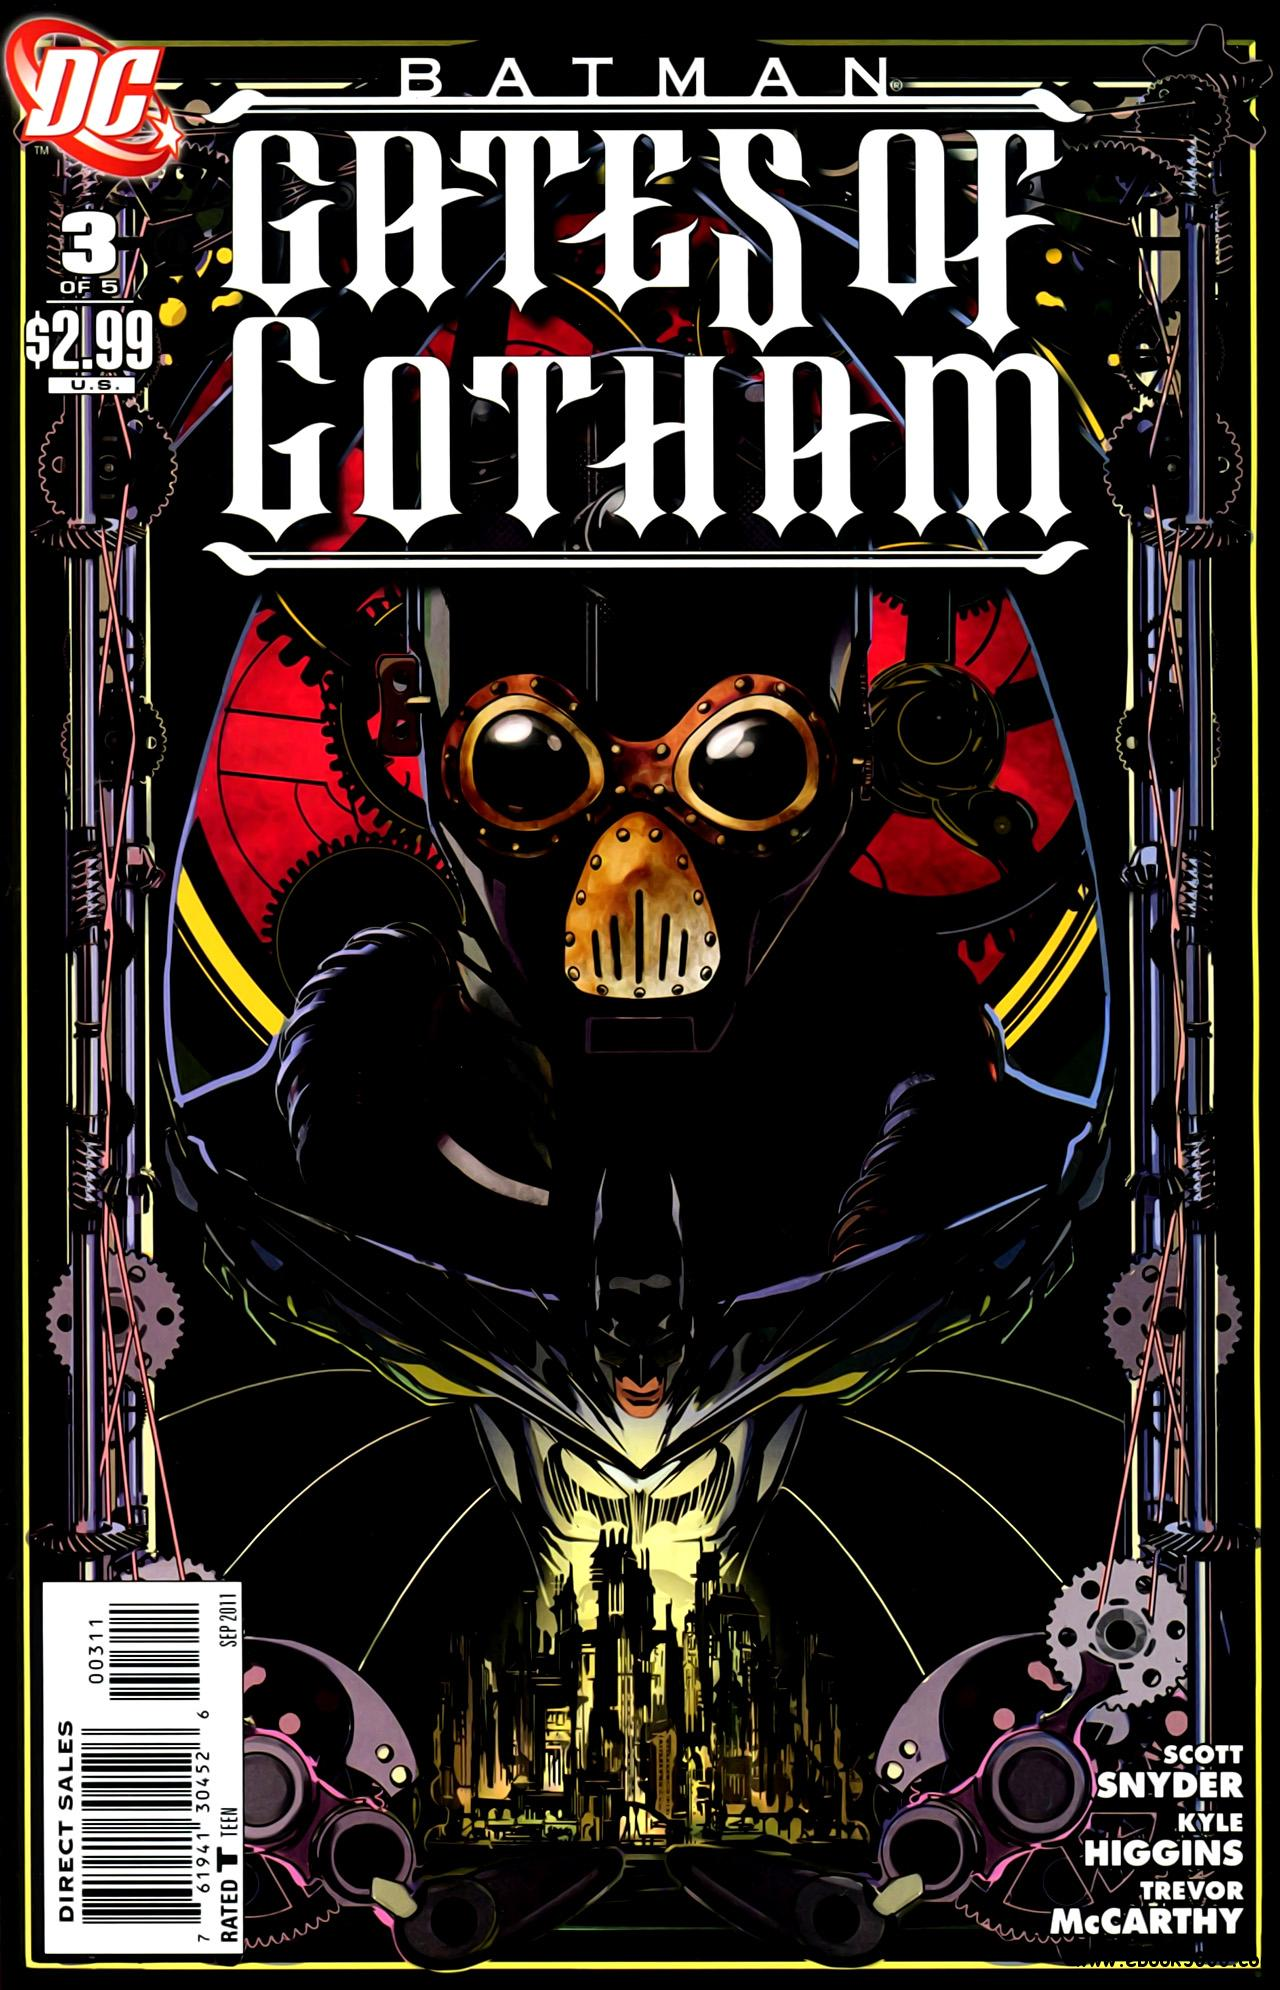 Batman - Gates of Gotham #3 (2011) free download